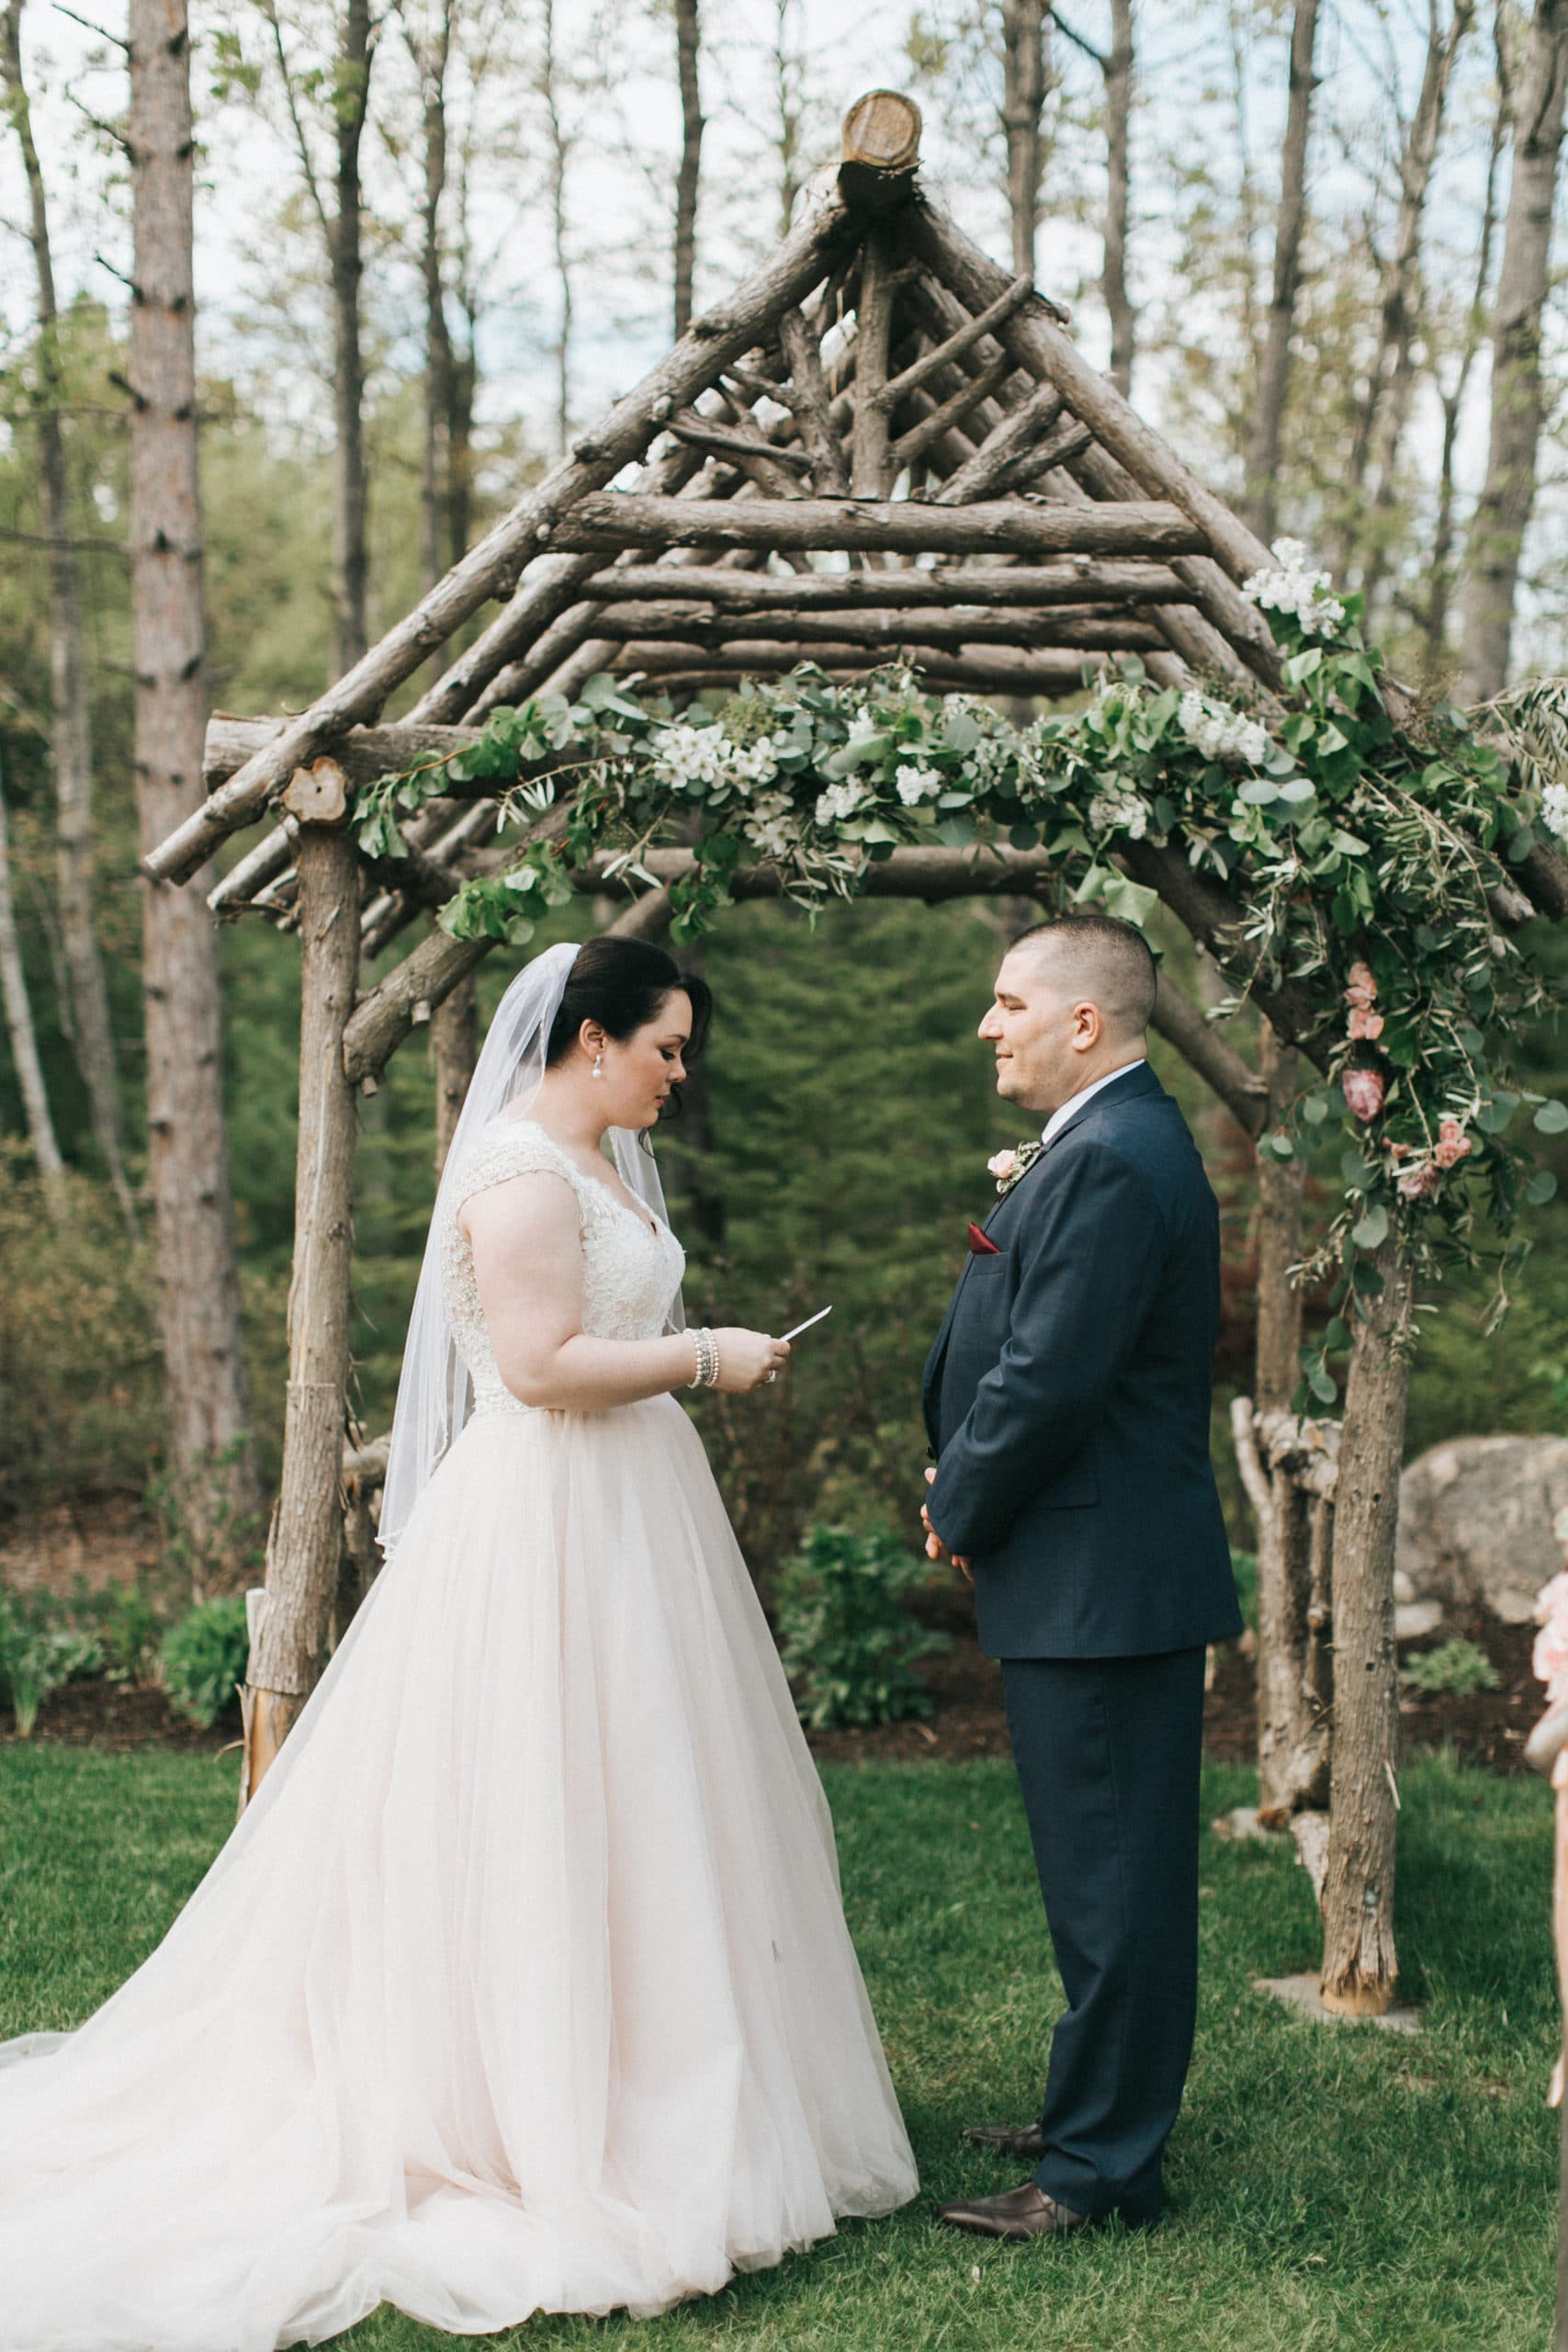 Best places to elope in Maine